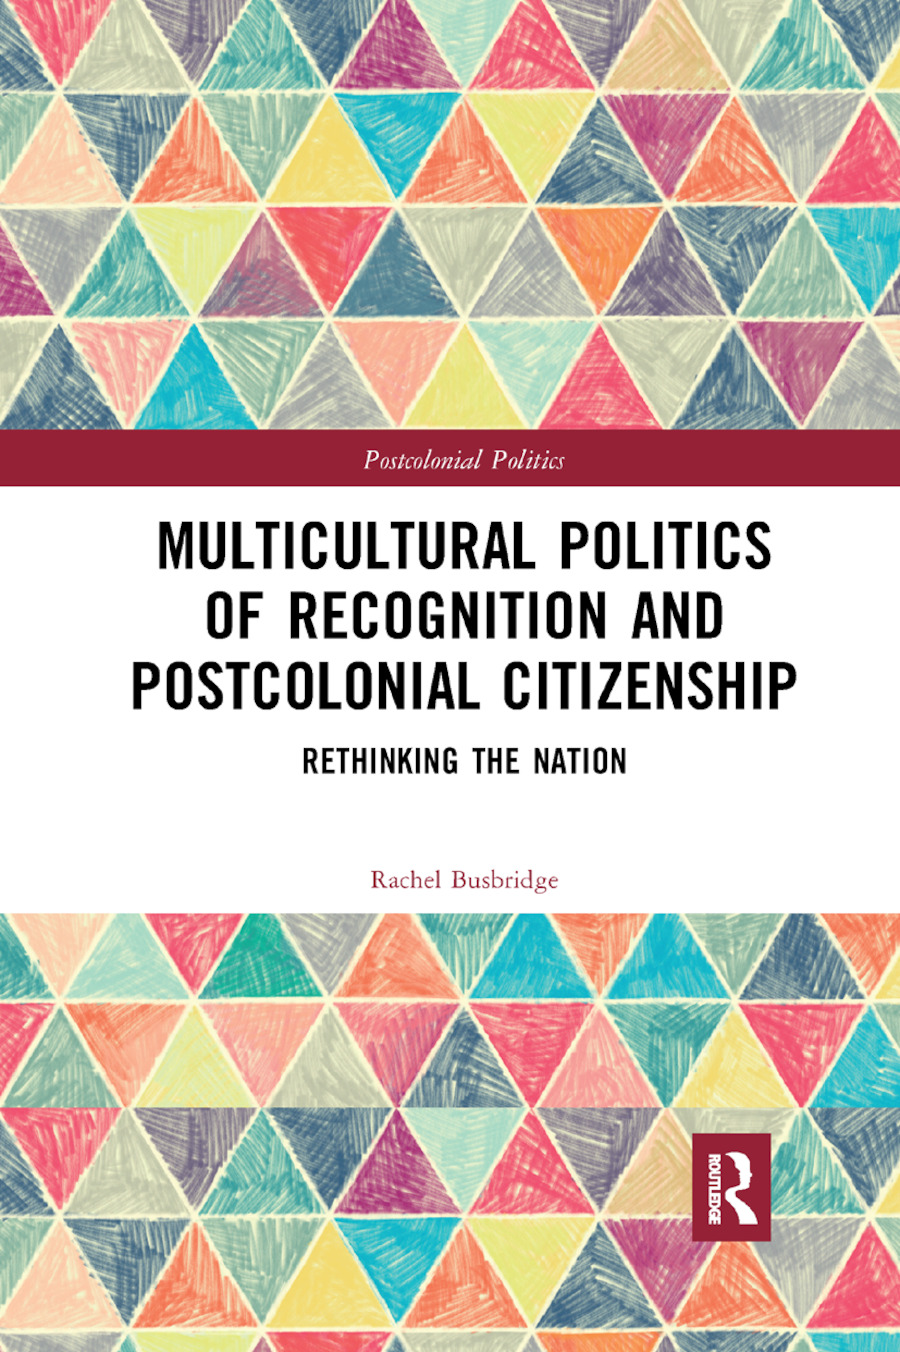 Multicultural Politics of Recognition and Postcolonial Citizenship: Rethinking the Nation book cover